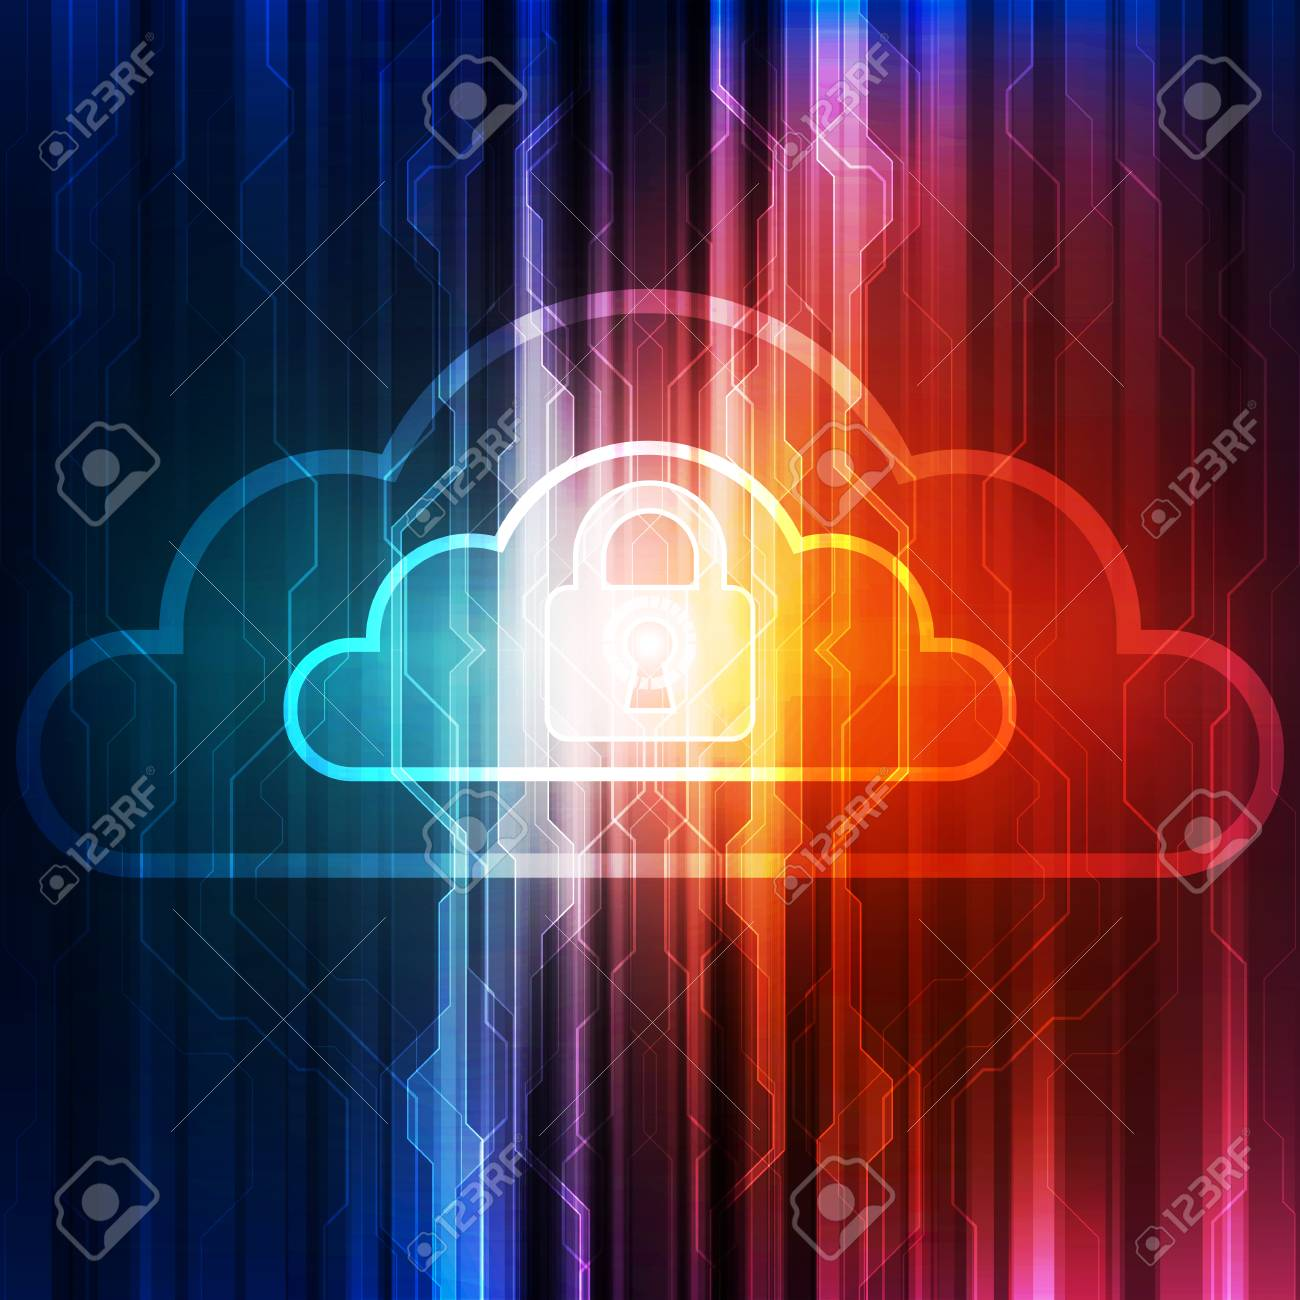 Abstract cloud technology in the future - 121024704